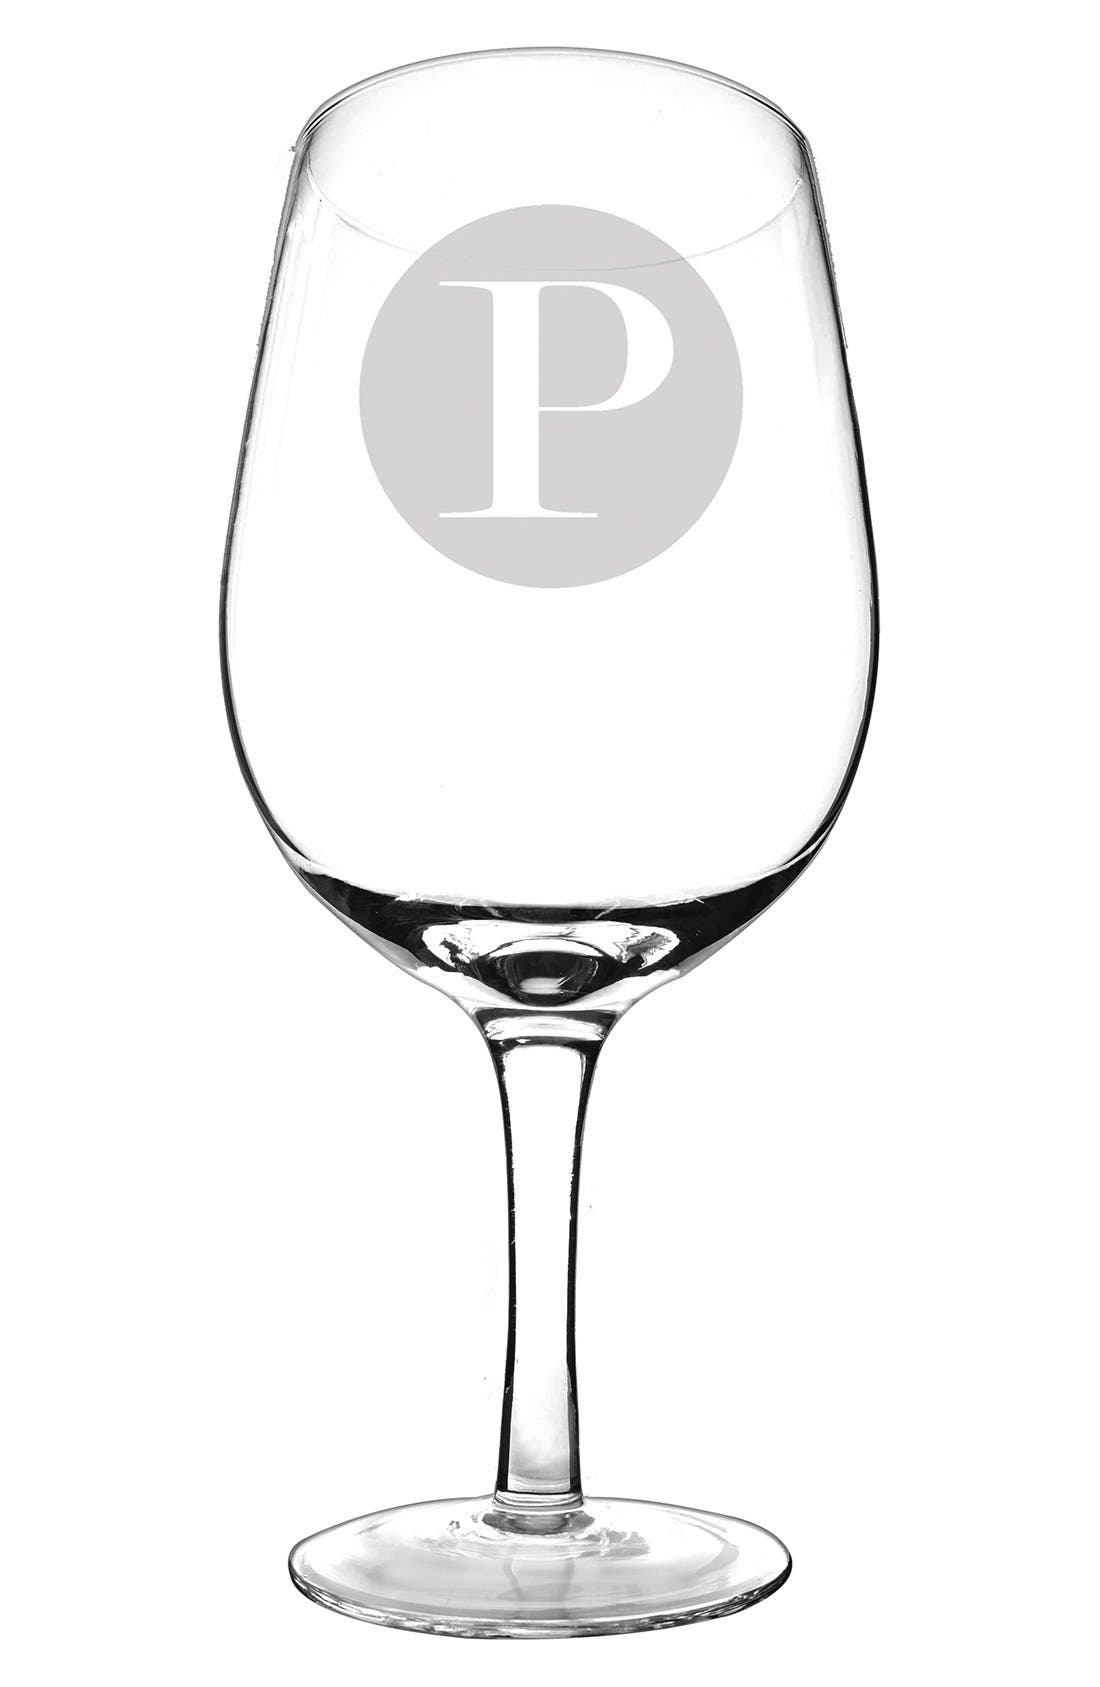 Main Image - Cathy's Concepts Monogram 'XL' Novelty Wine Glass